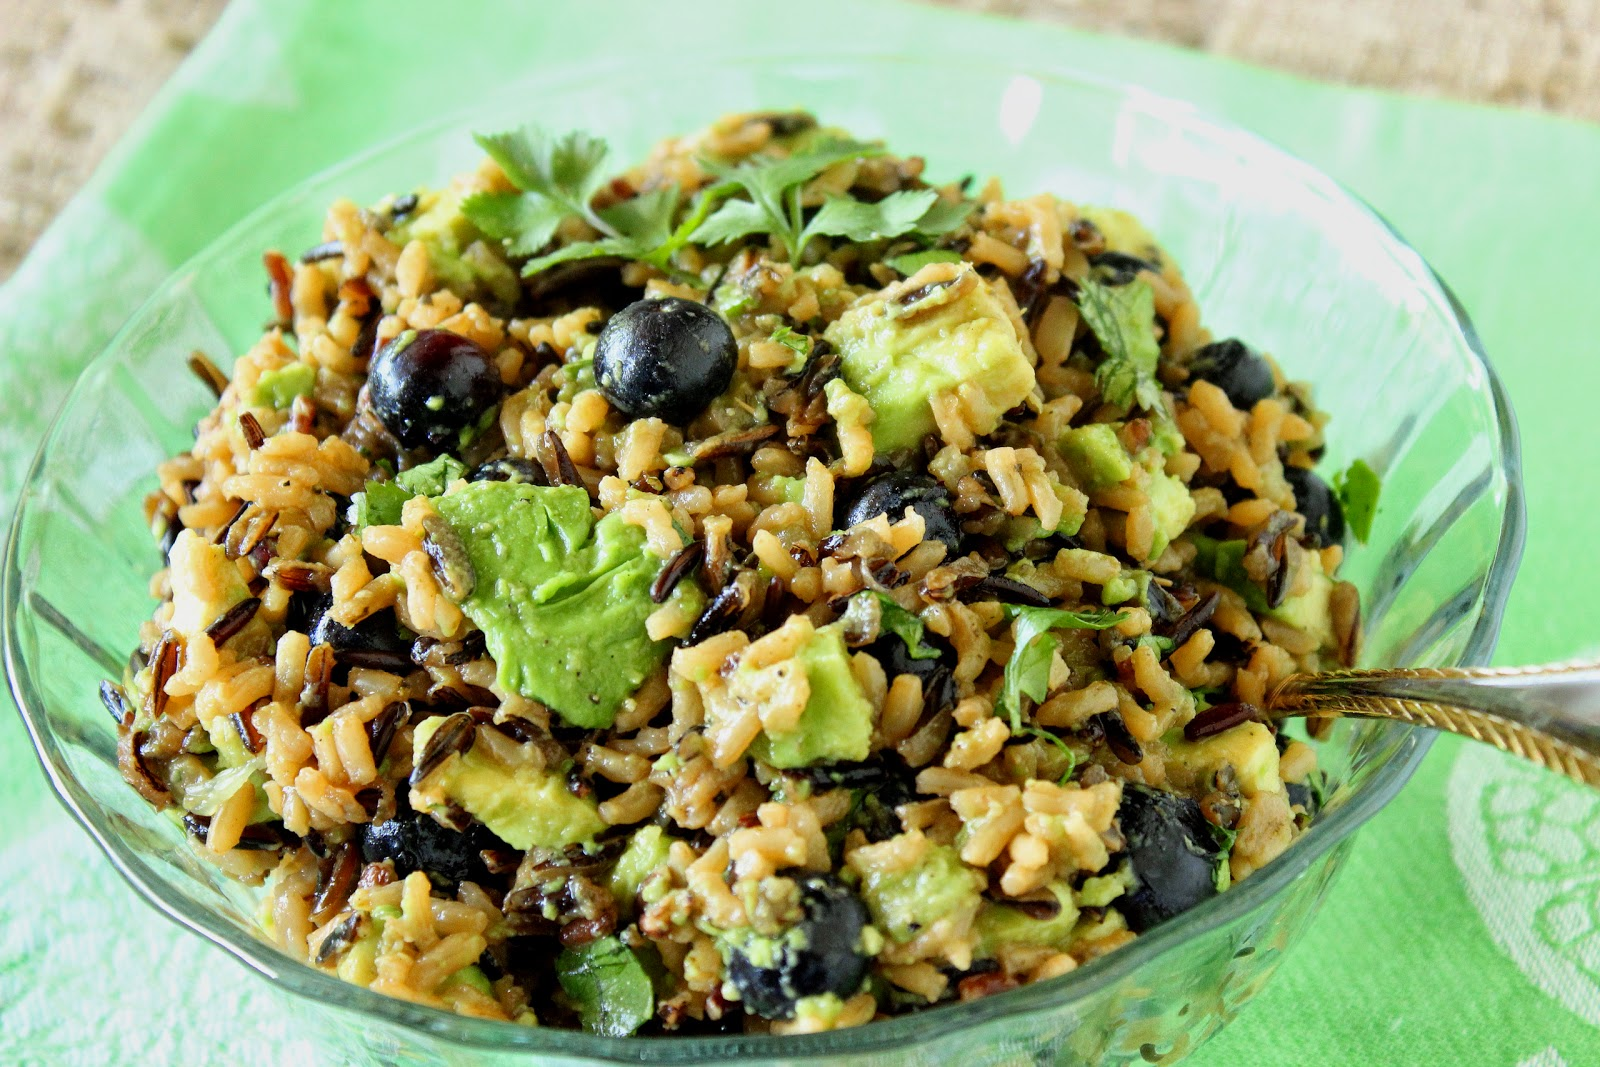 Avocado, Blueberry and Wild Rice Recipe via Kudos Kitchen by Renee